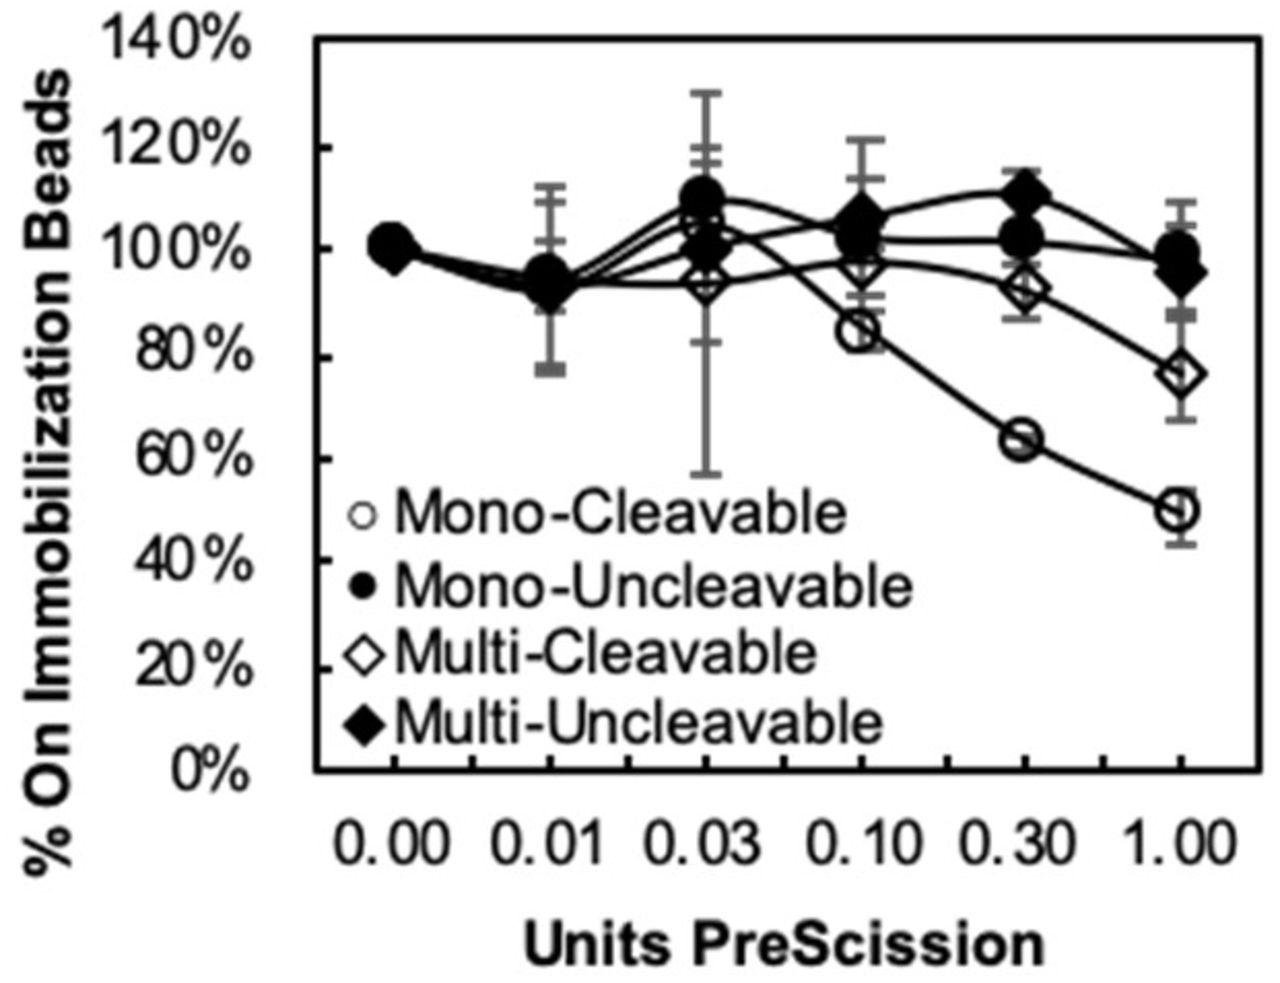 A T7-SEPARATE clone encoding the PreScission cleavage motif -LGVLPG/GP- was prepared using both the T7Select1-2b monovalent (○) and the T7Select10-3b multivalent (◇) T7 display vectors. The monovalent display results in a higher depletion of phage clones from the immobilization beads indicating a higher fraction is digested at a given concentration of PreScission protease. A negative control clone lacking the PreScission cleavage motif is not digested off of streptavidin-coated beads for both monovalent (●) and multivalent (◆) display vectors.